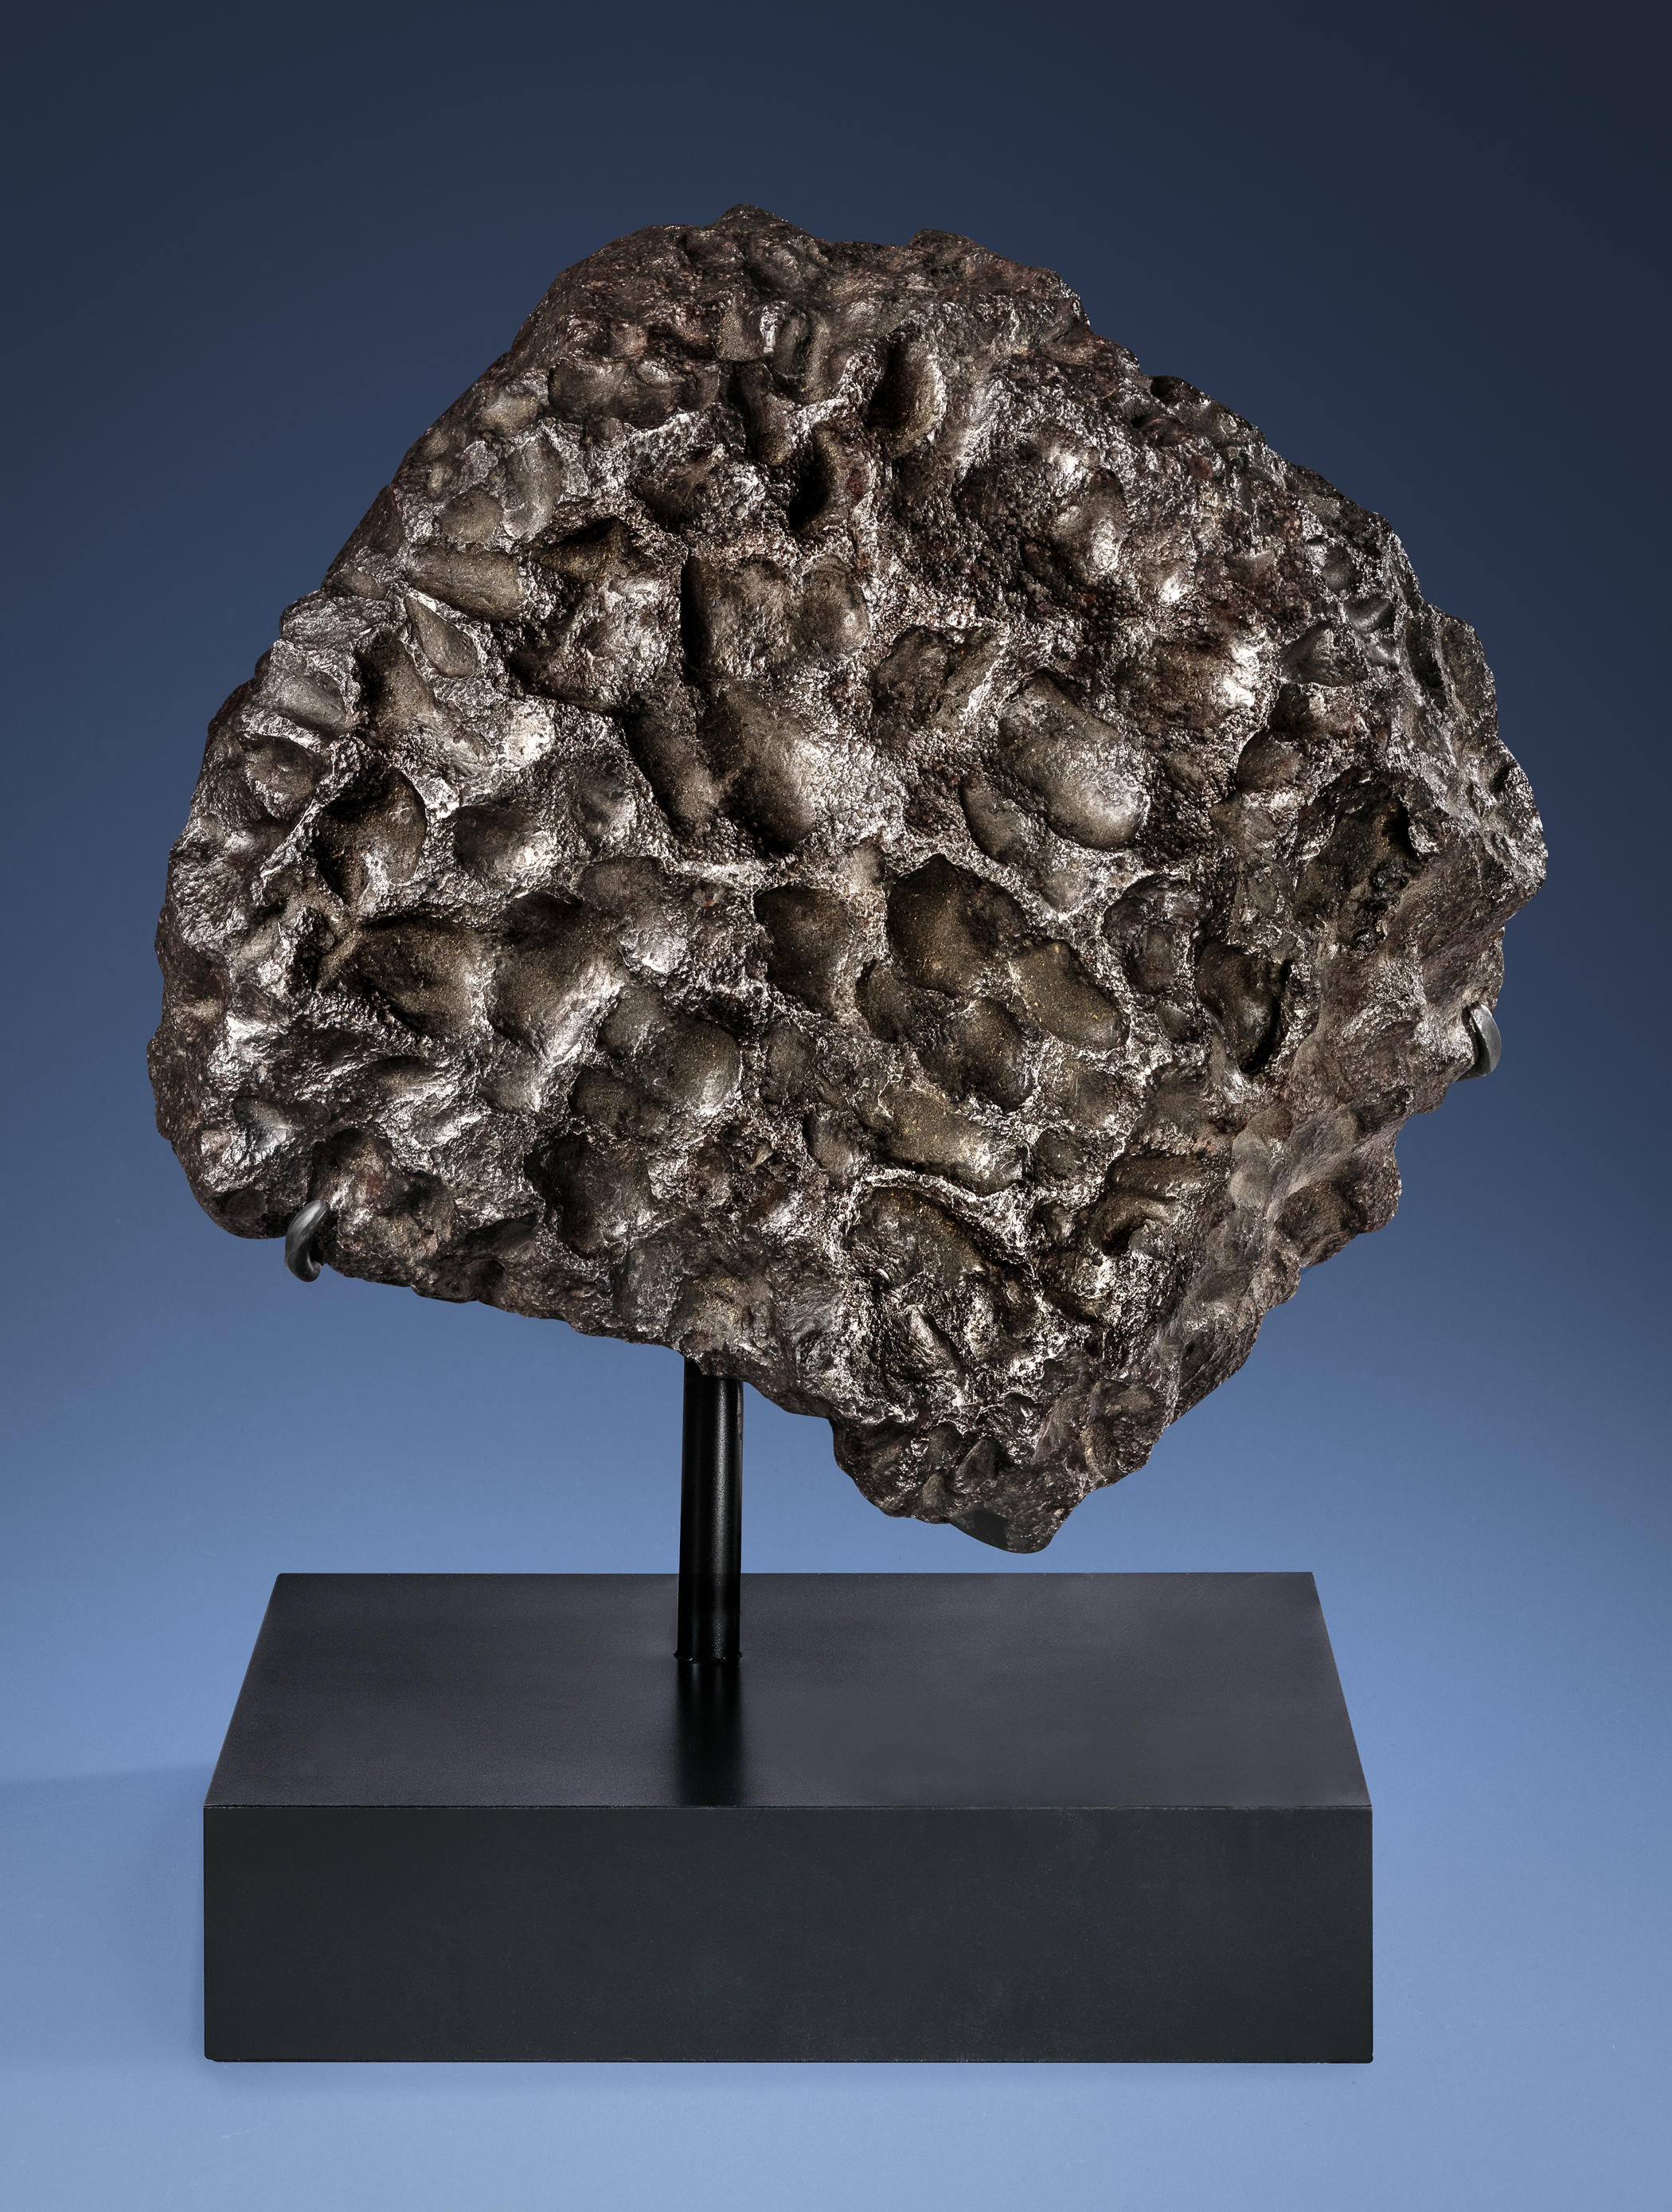 MASSIVE SCULPTURE FROM OUTER SPACE — AESTHETIC CAMPO DEL CIELO IRON METEORITE